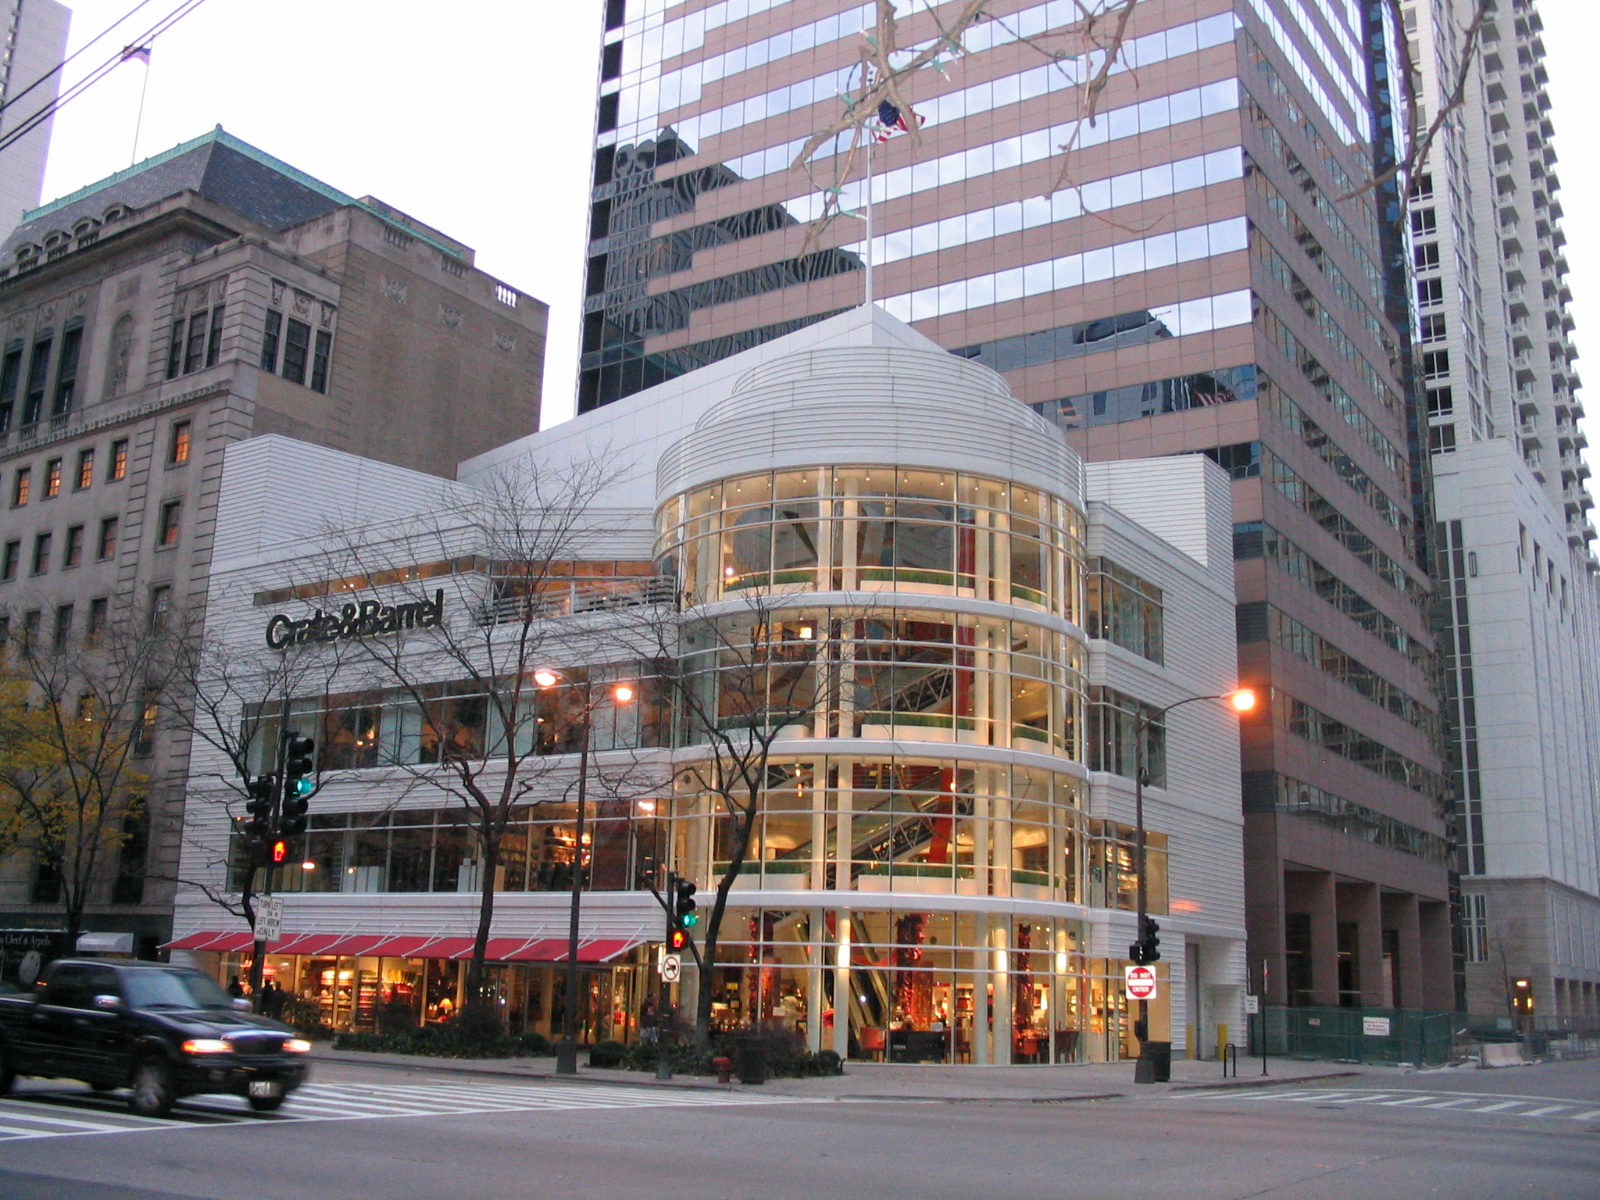 Erie Furniture Stores File:Crate & Barrel at 646 N Michigan Ave, Chicago.jpg - Wikimedia ...